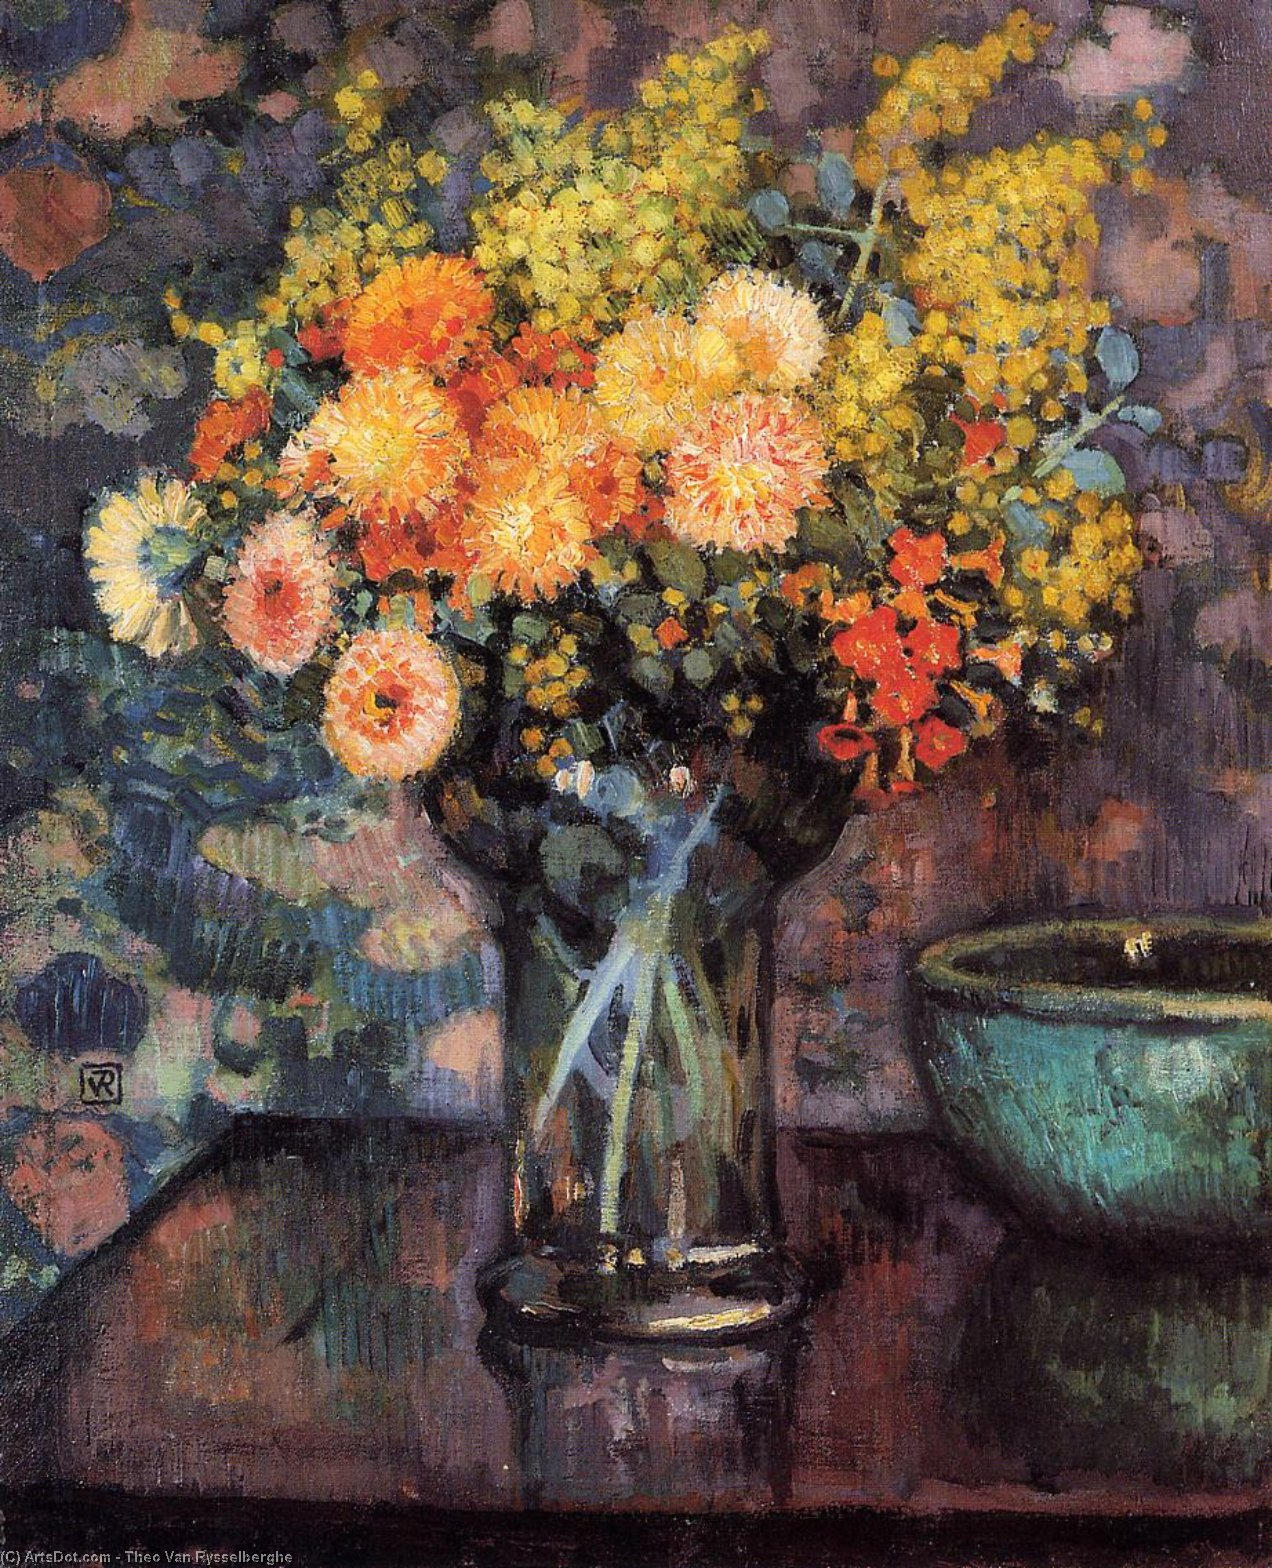 Vase of Flowers, Oil On Canvas by Theo Van Rysselberghe (1862-1926, Belgium)